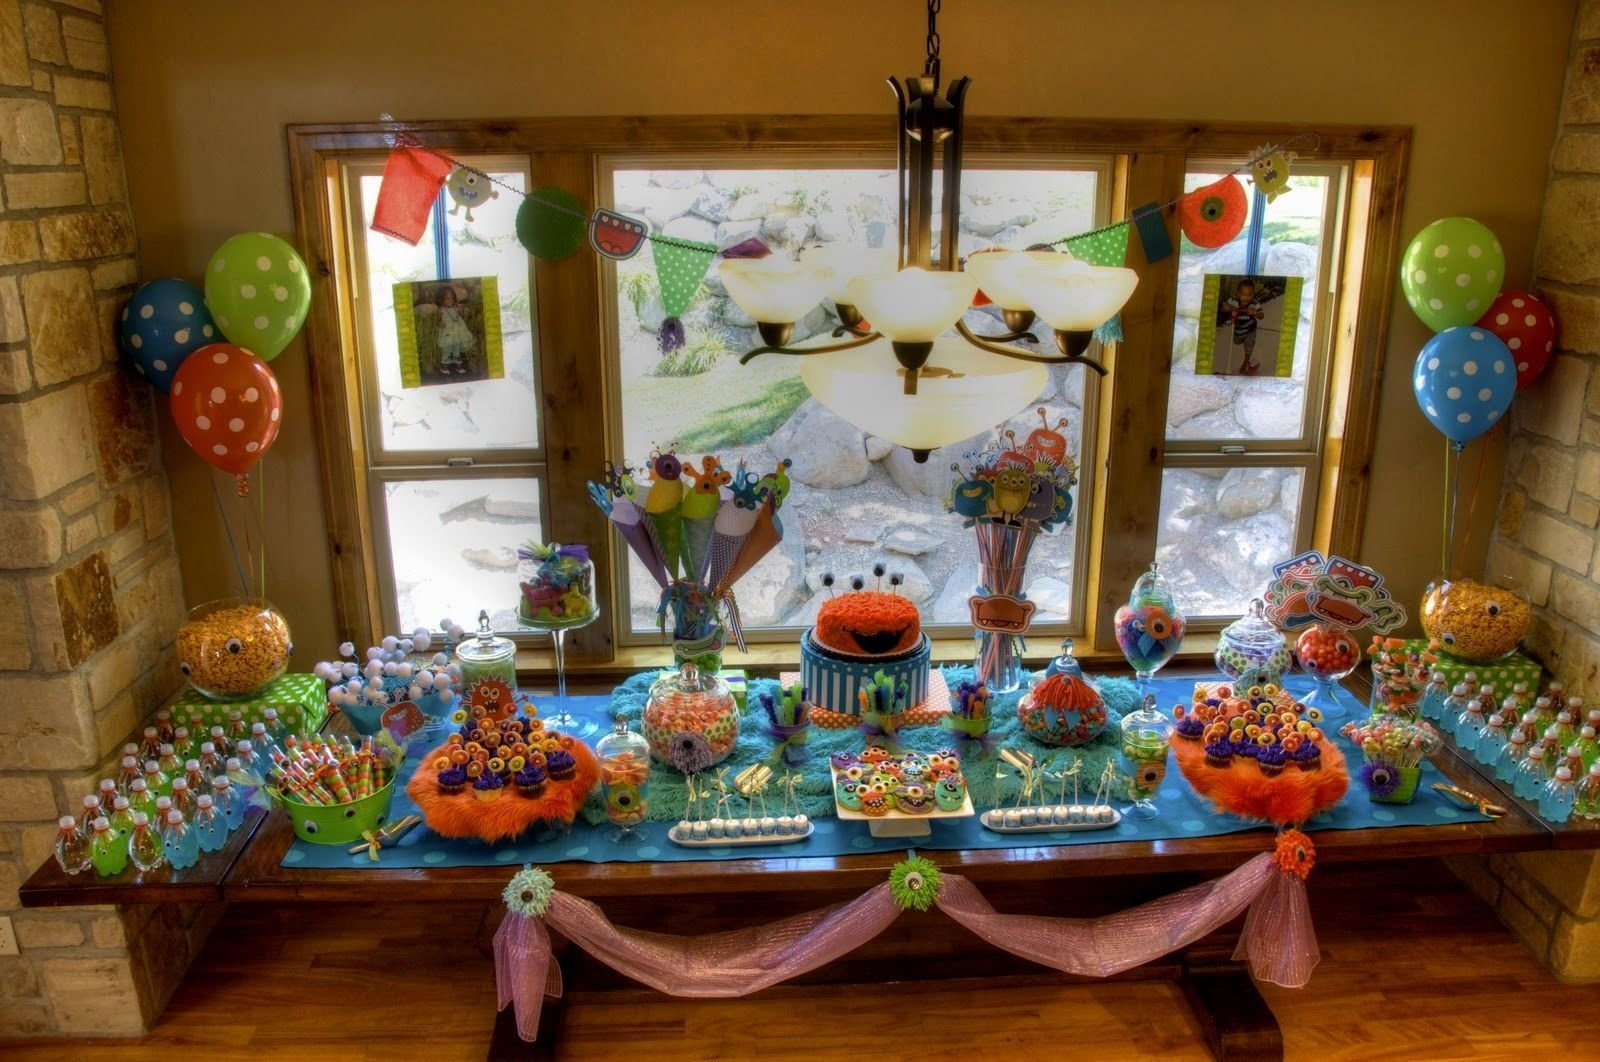 10 Lovely Birthday Ideas For 8 Year Old Boy 8 year old boy birthday party theme winter birthday party ideas for 3 2020